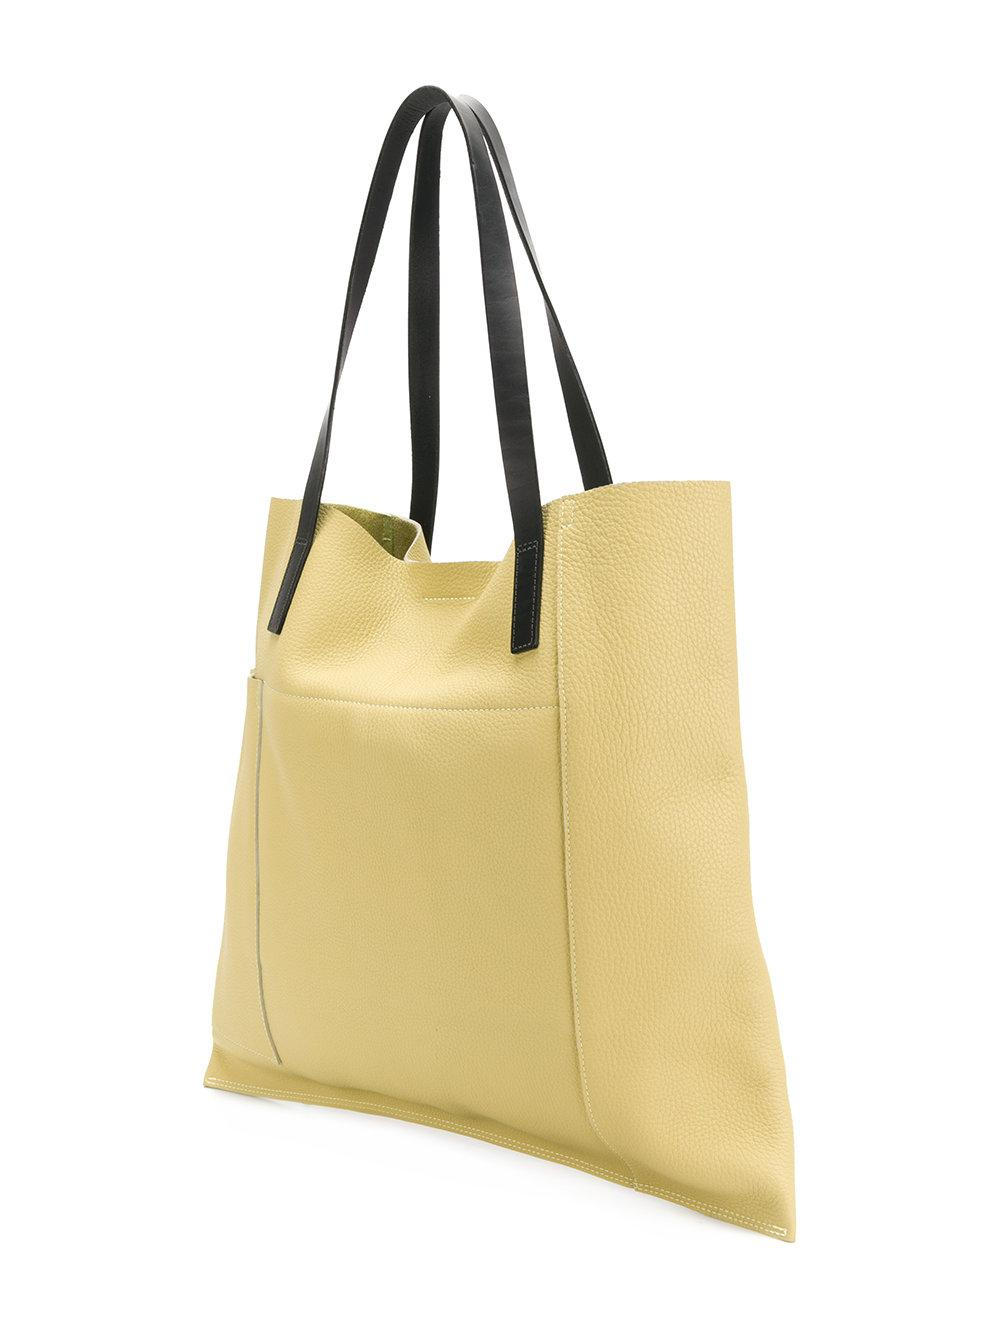 Ally Capellino Leather Verity Tote Bag in Yellow & Orange (Yellow)